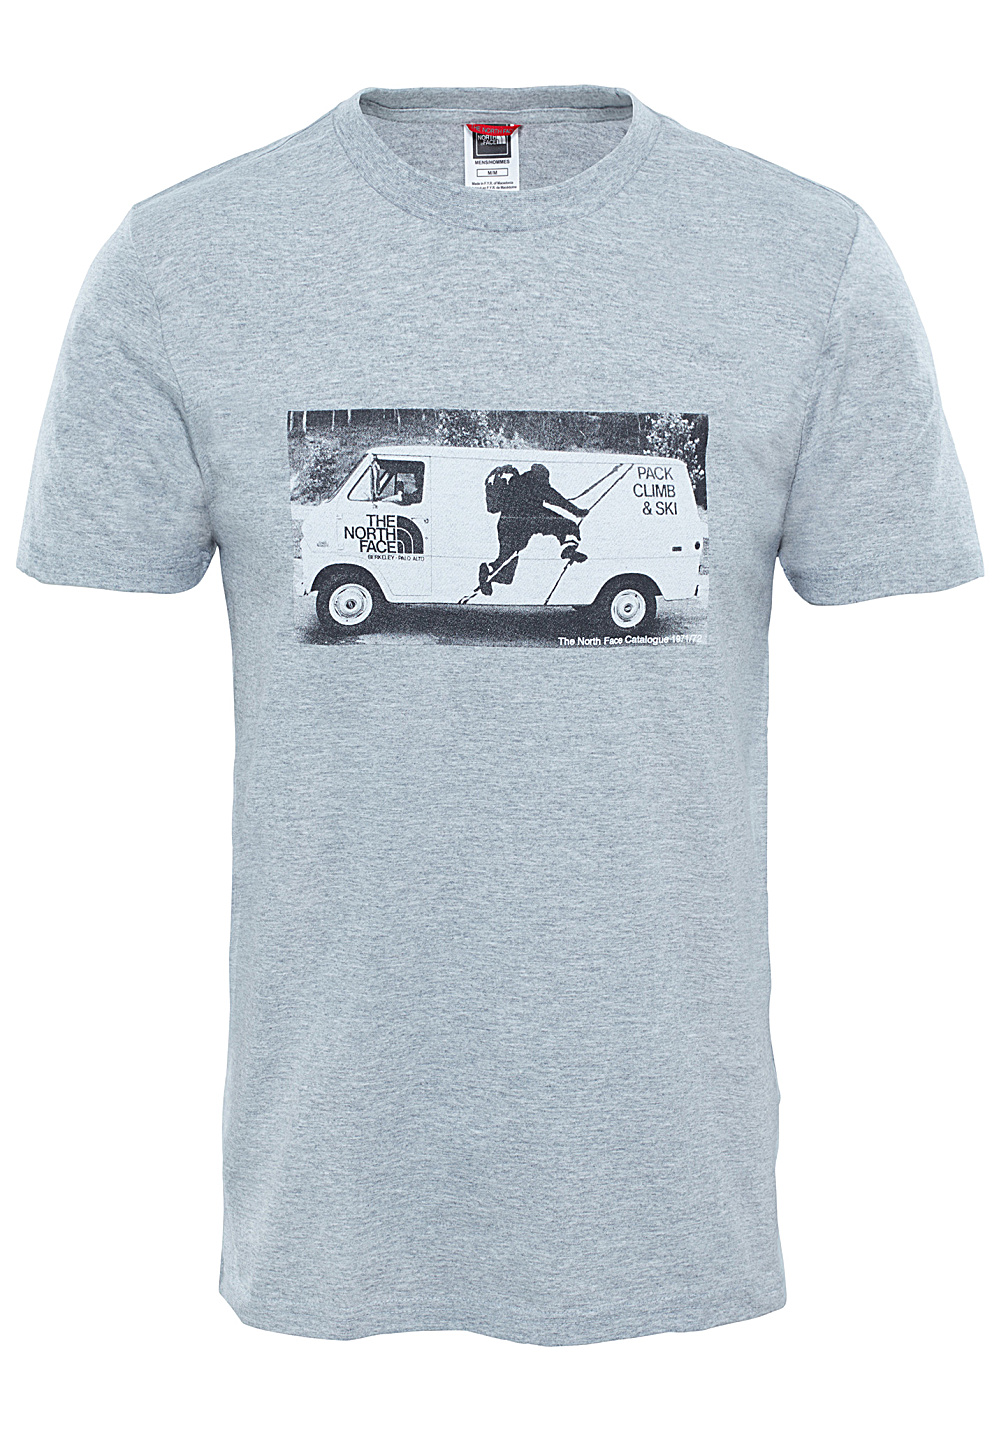 2c57c7330 THE NORTH FACE Celebrate Easy - T-Shirt for Men - Grey